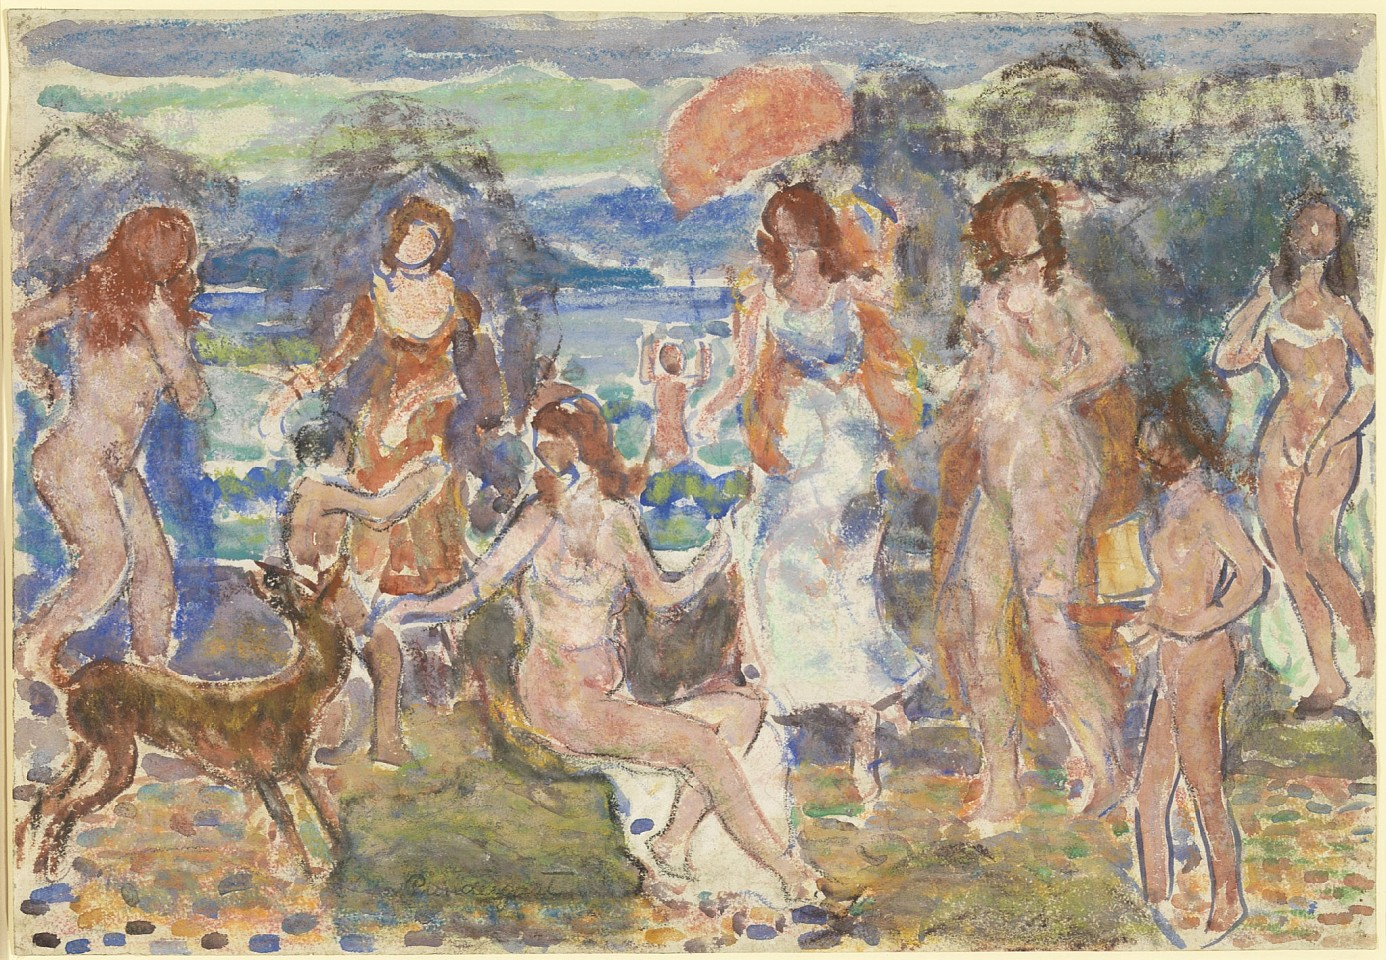 Maurice Prendergast ,   Distance Hills, Maine  ,  c. 1912-15     watercolor, pastel and pencil on paper ,  13 3/4 x 19 7/8 in. (34.9 x 50.5 cm)     MP190401